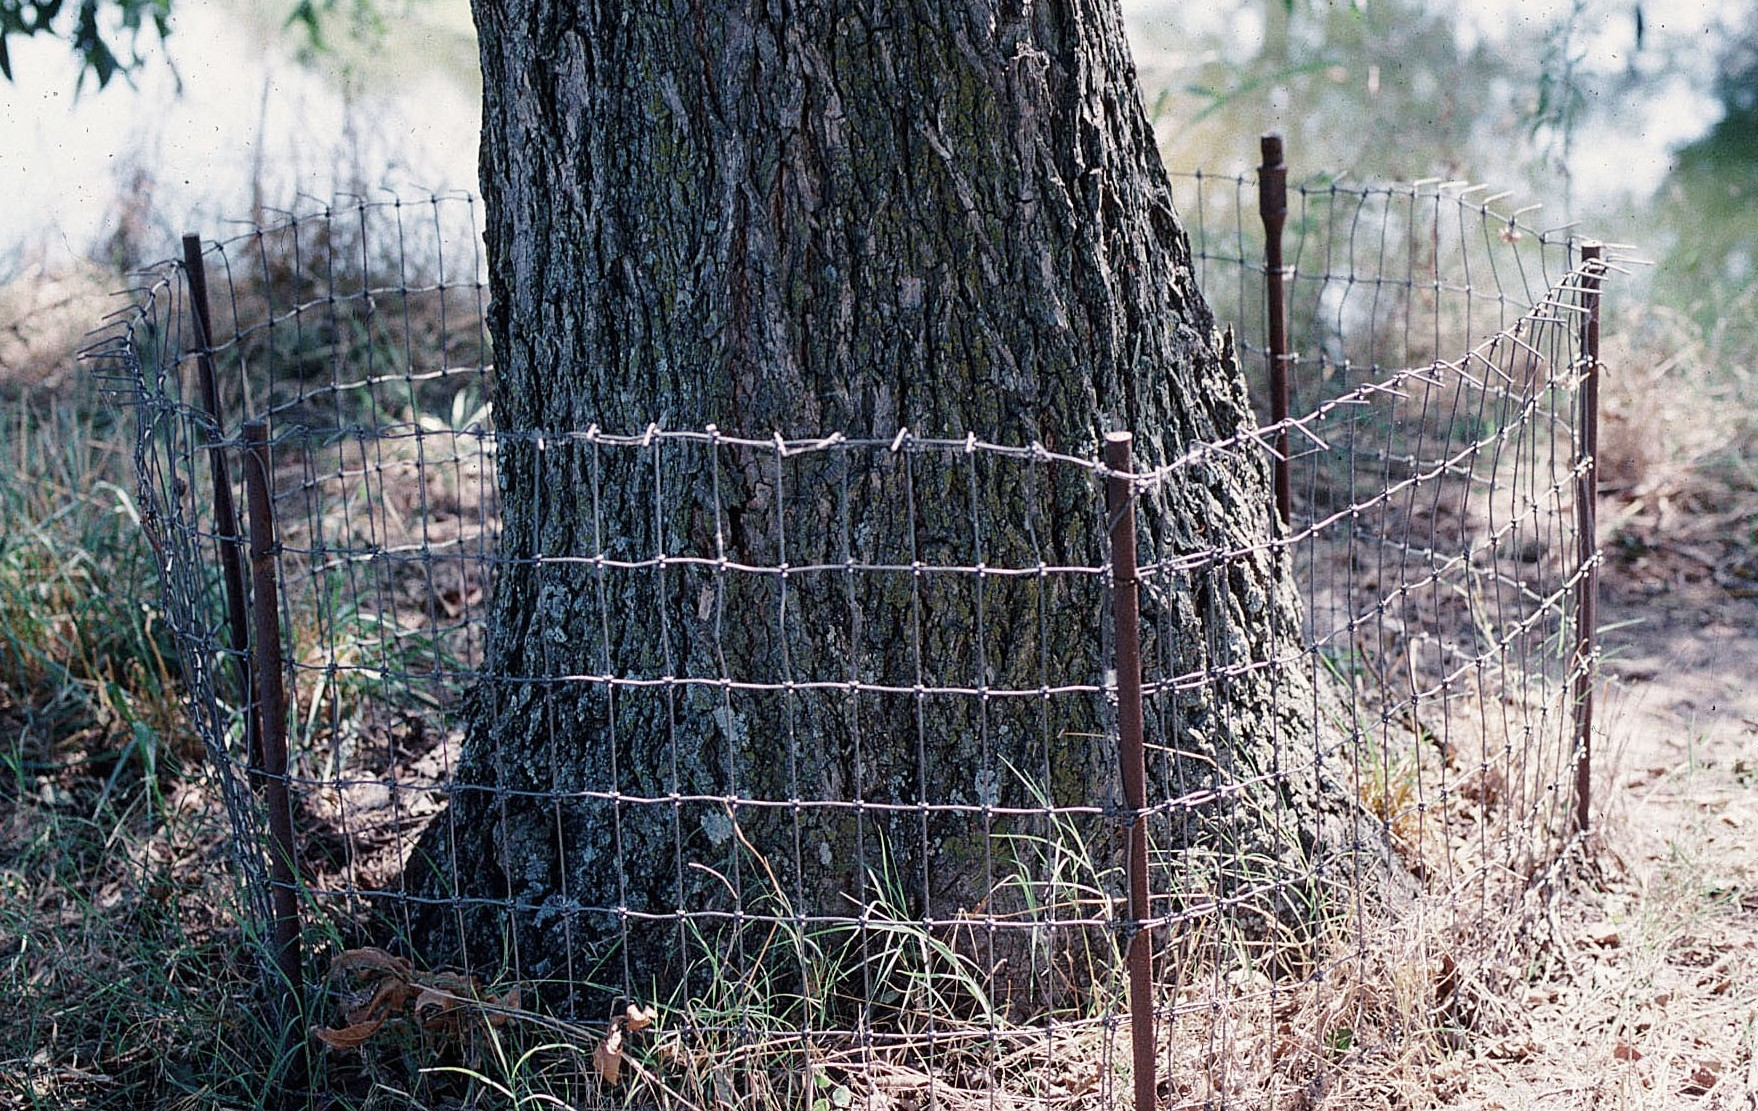 A 2-inch by 4-inch woven wire beaver exclosure protecting a pecan tree